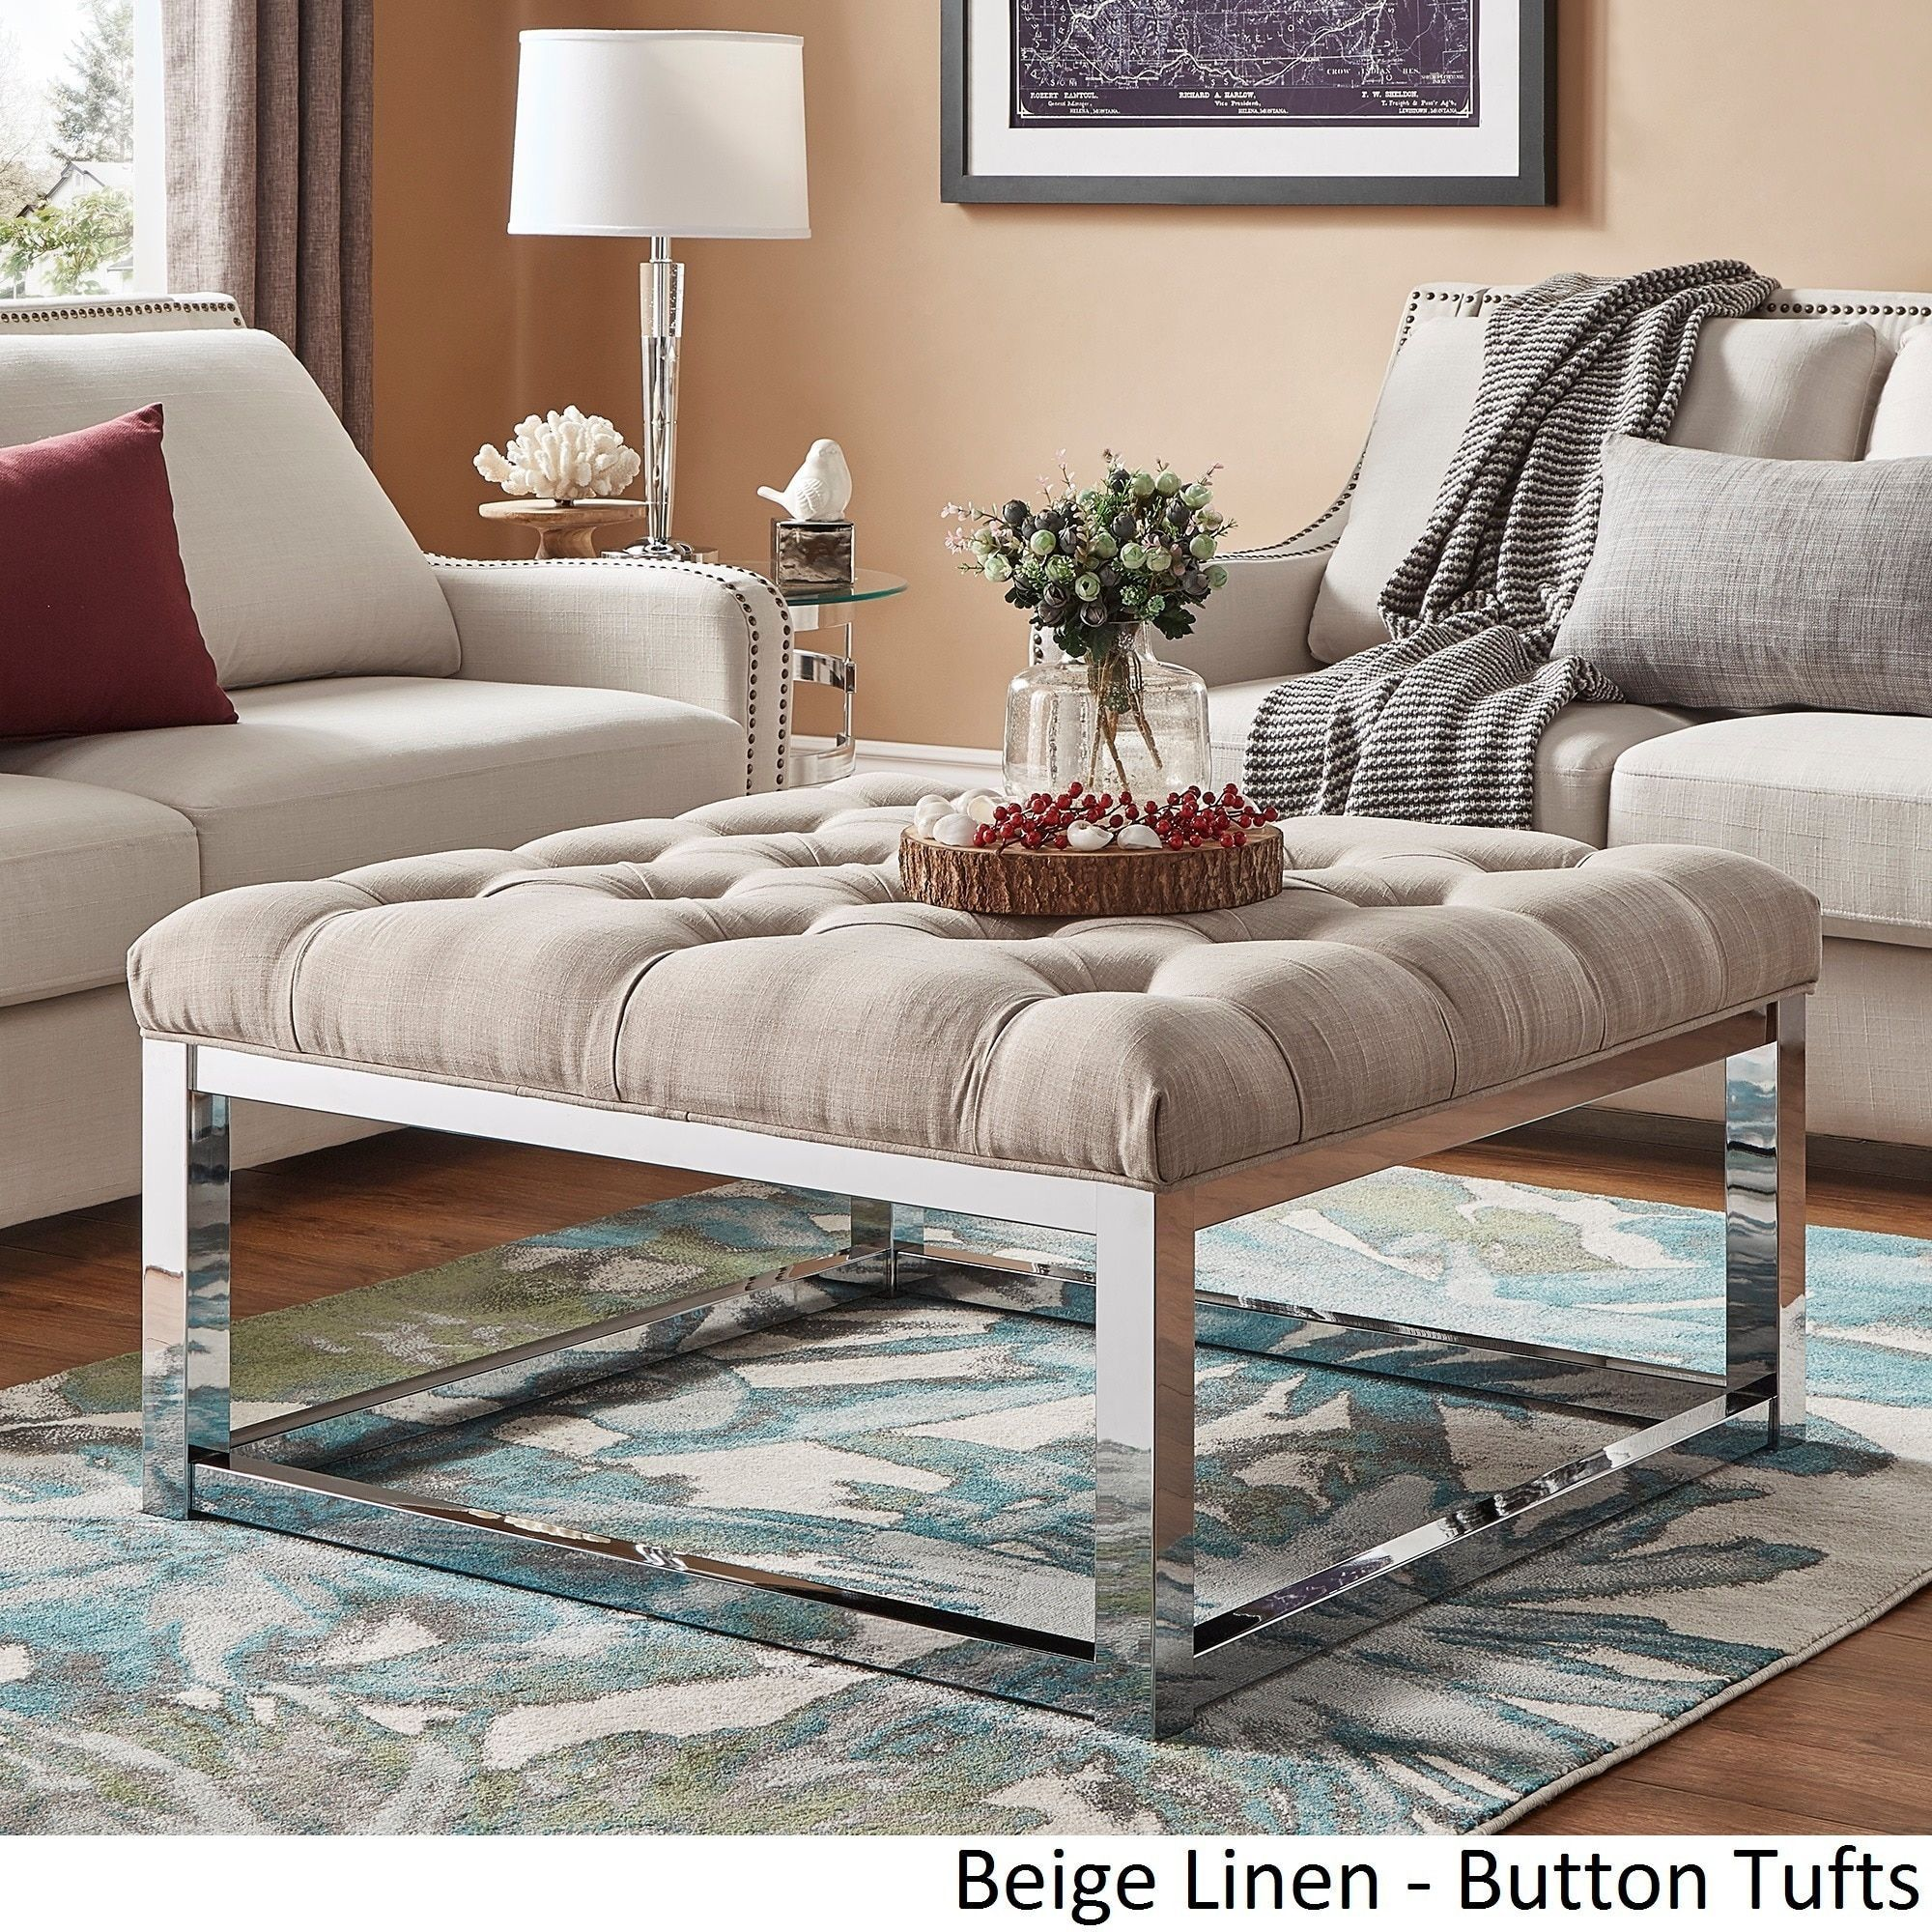 Solene Square Base Ottoman Coffee Table Chrome by Inspire Q